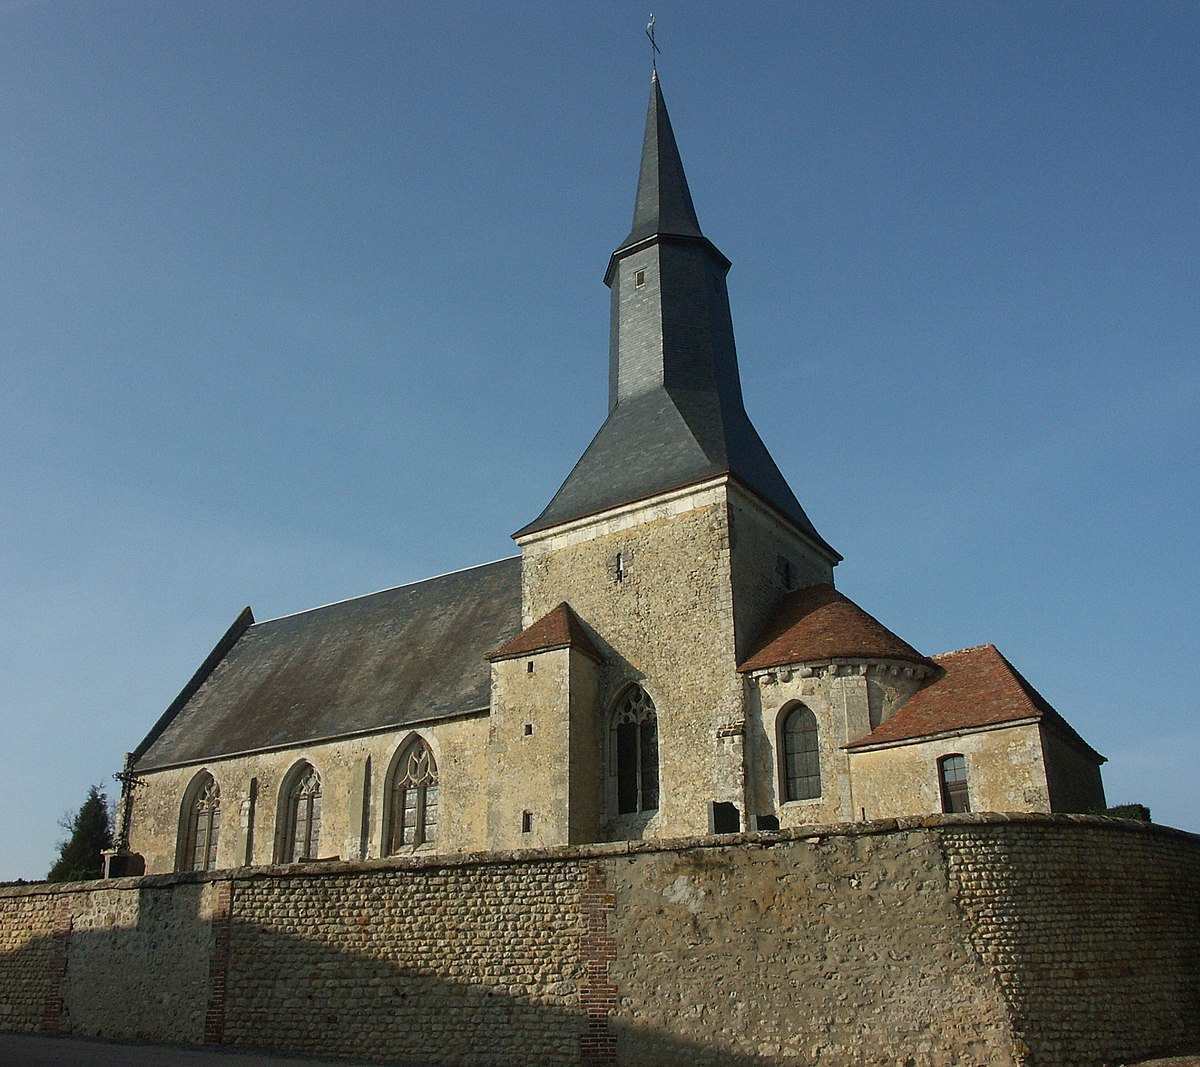 https://upload.wikimedia.org/wikipedia/commons/thumb/9/93/Champs._Orne._Eglise_Saint_Evroult_bu_173.jpg/1200px-Champs._Orne._Eglise_Saint_Evroult_bu_173.jpg